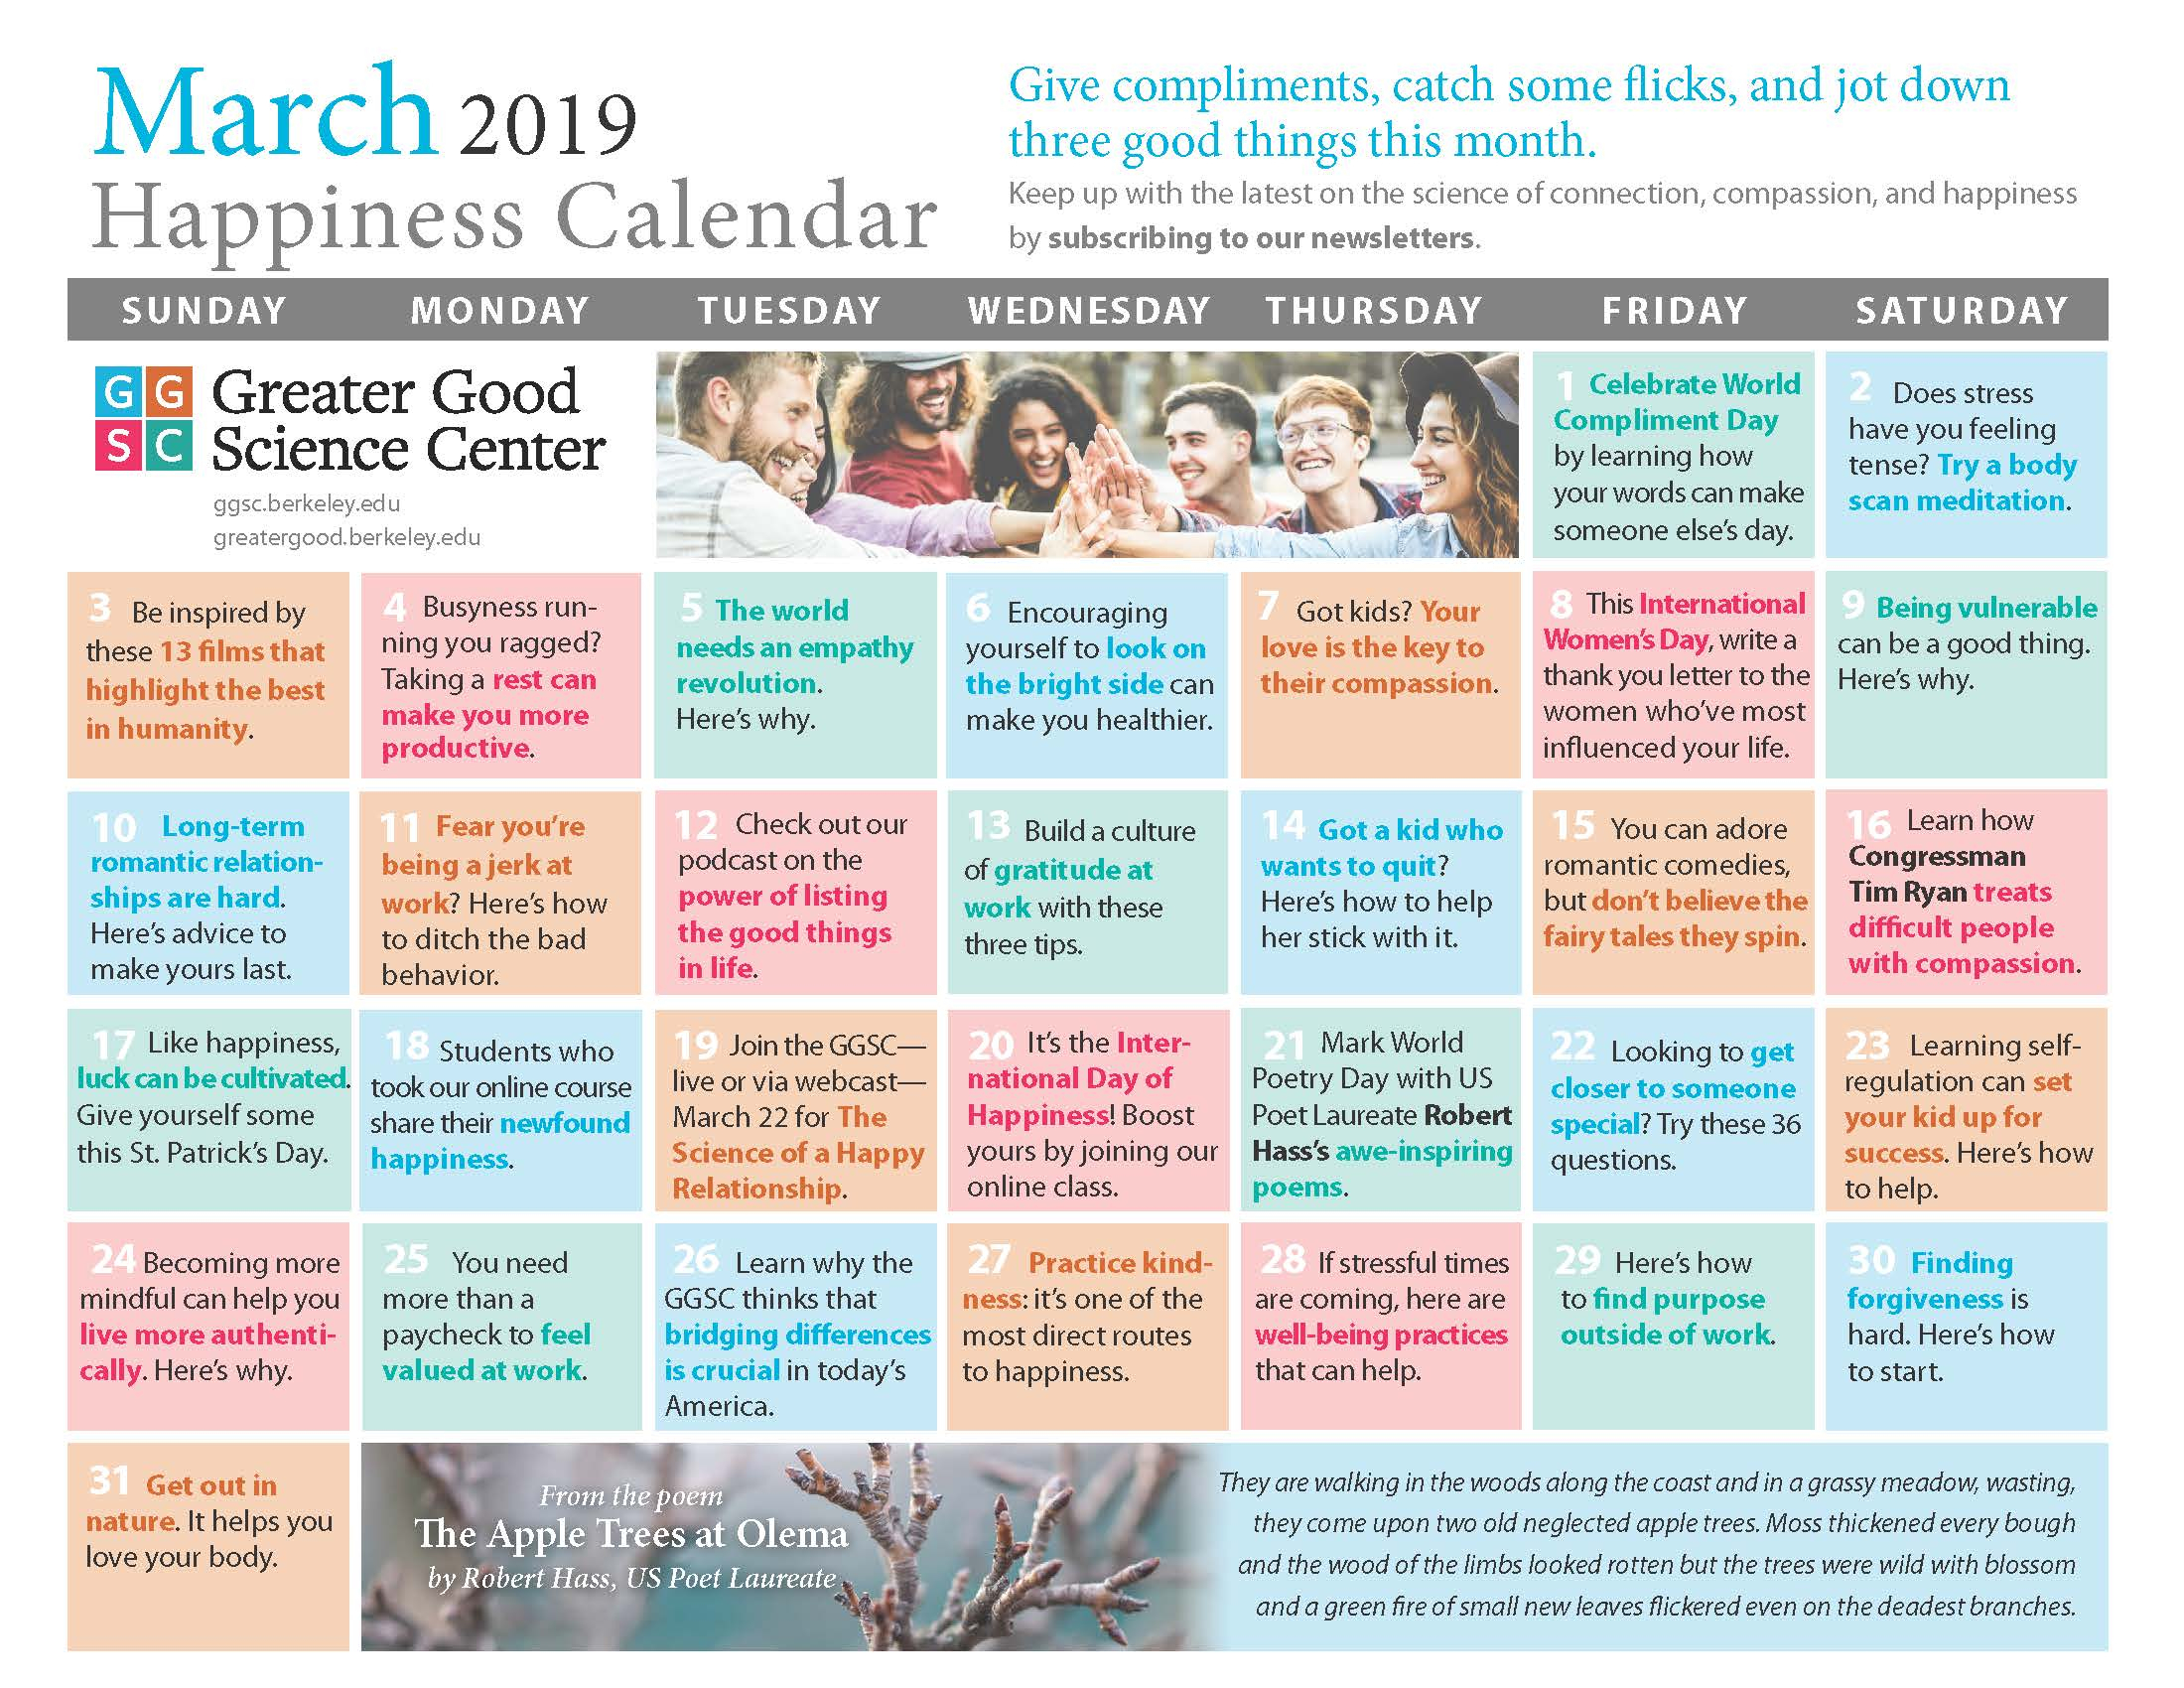 Your Happiness Calendar For March 2019 intended for Uc Berkeley 2020 Calendar